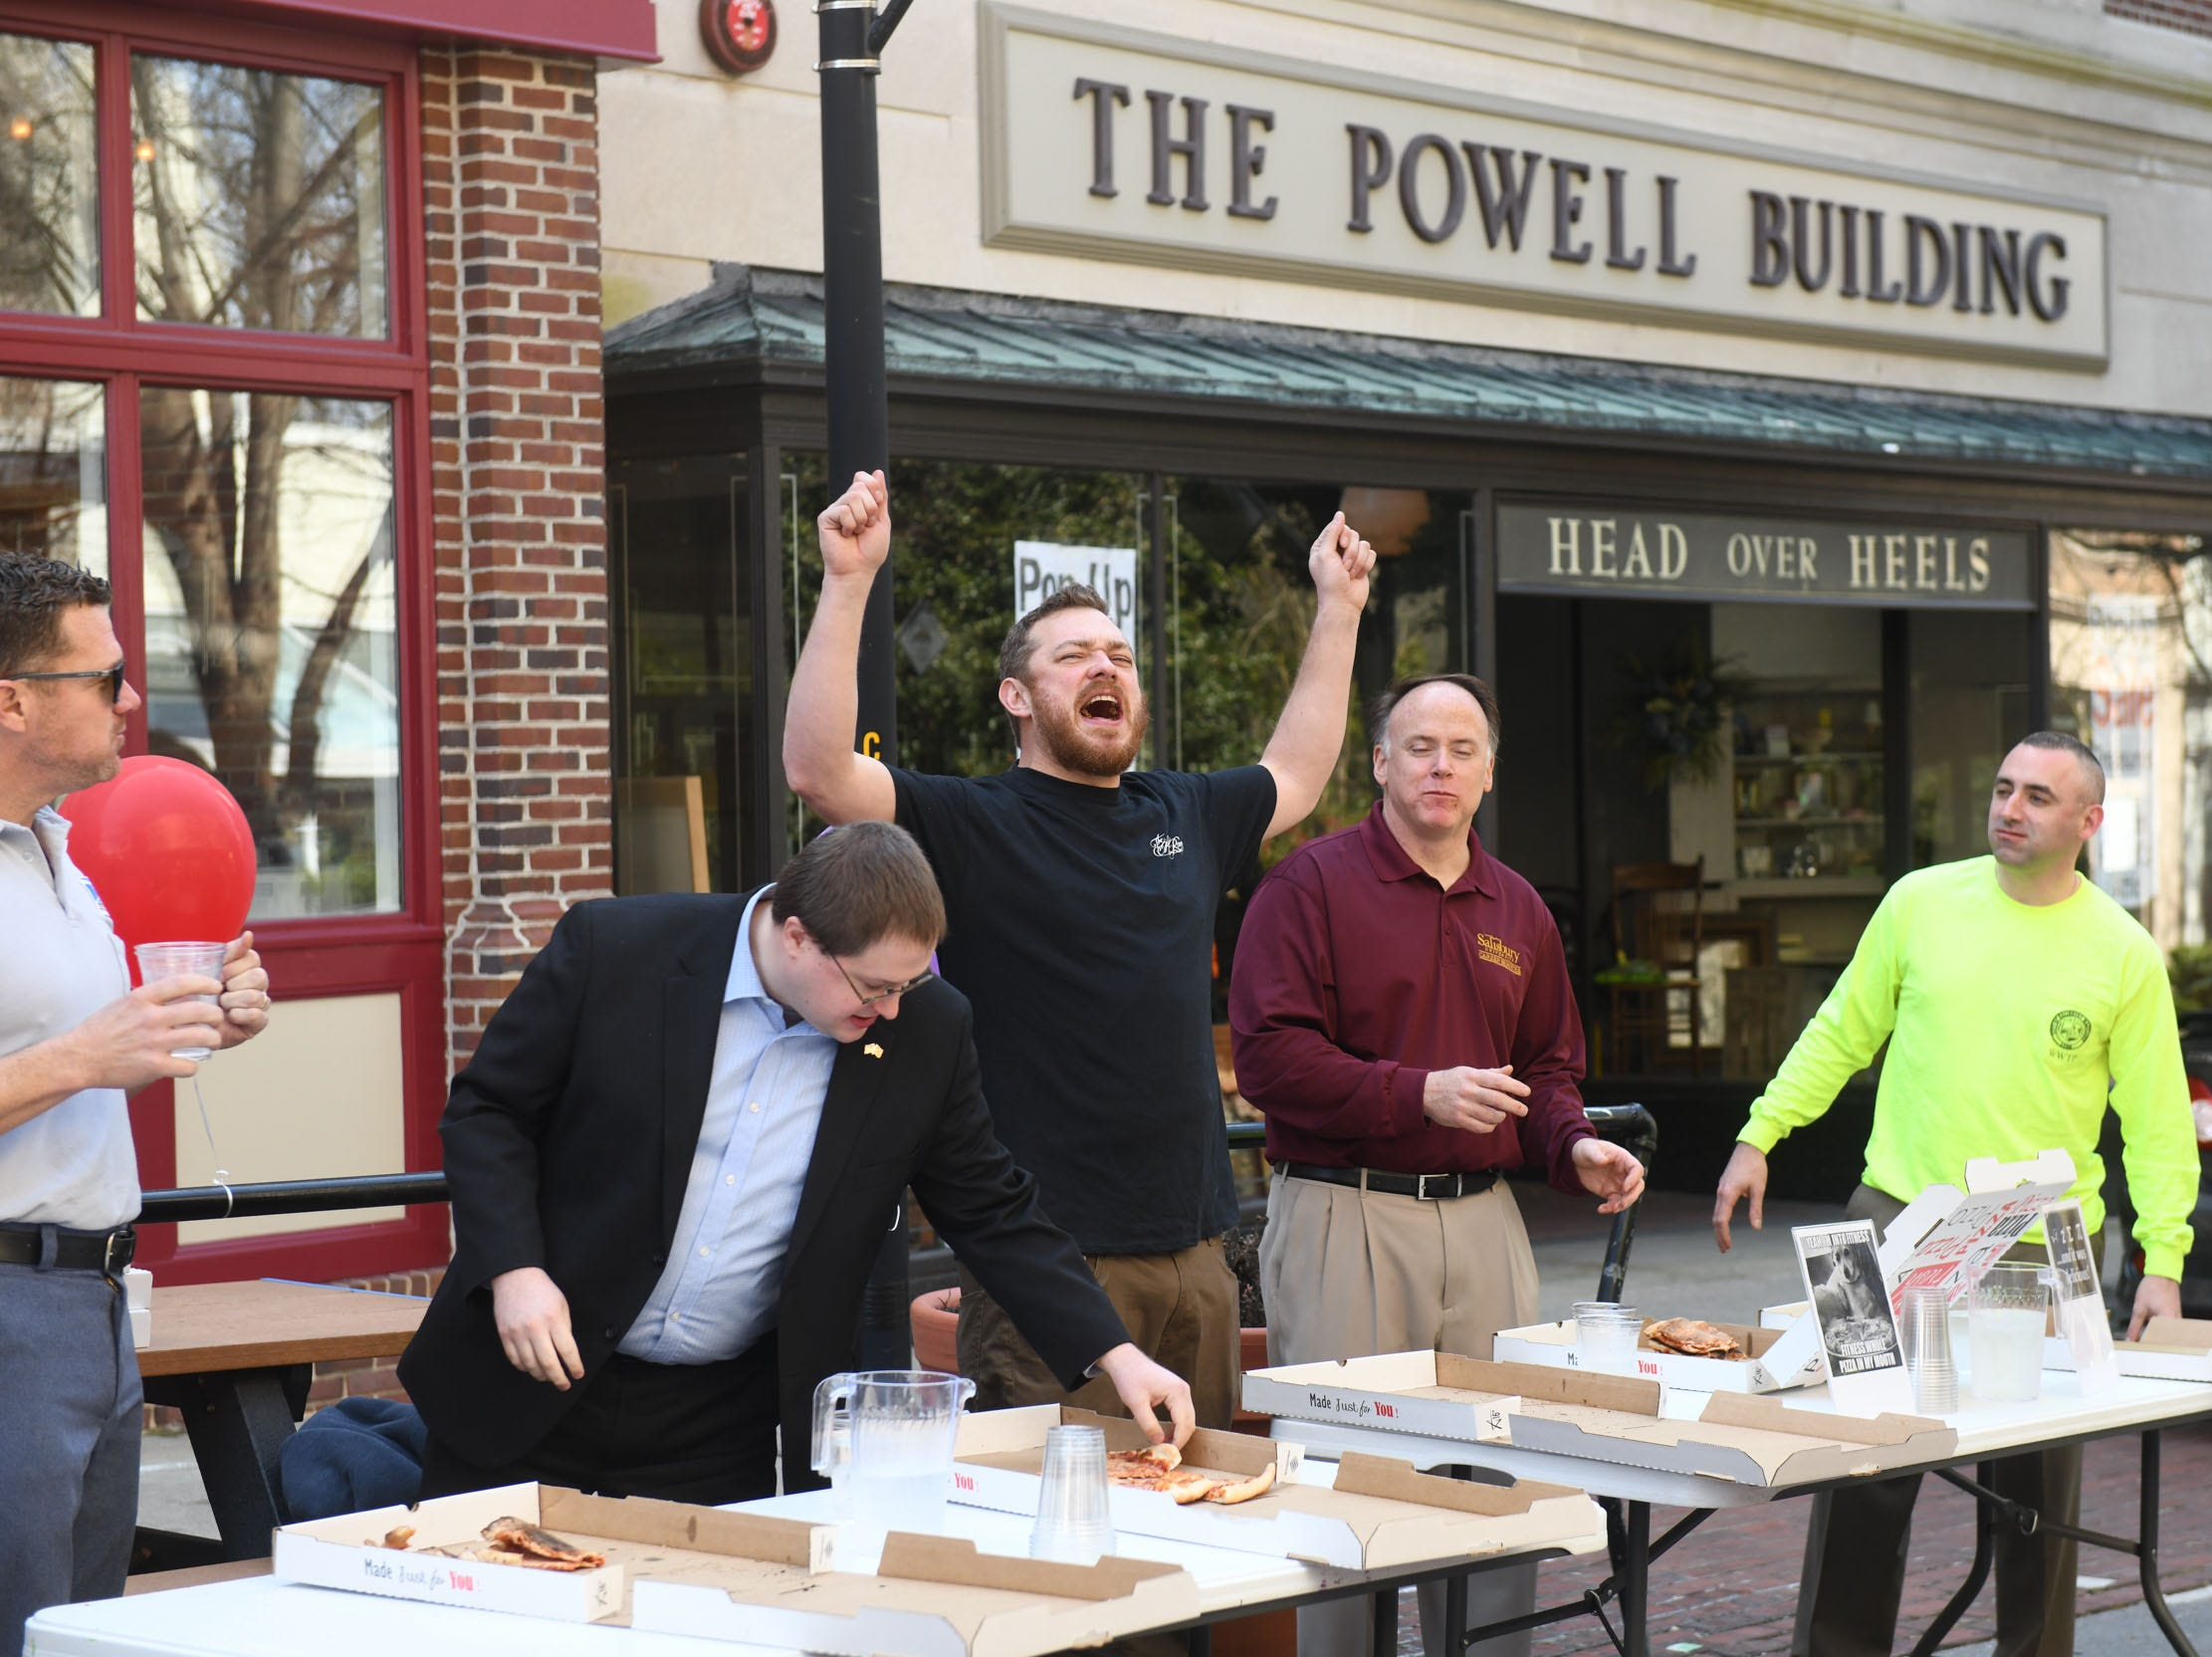 Alex Scott celebrates on eating a 16-inch pie the fastest at 6 mins and 37 seconds. During PI(e) Day in Downtown Salisbury on Thursday, March 14, 2019.